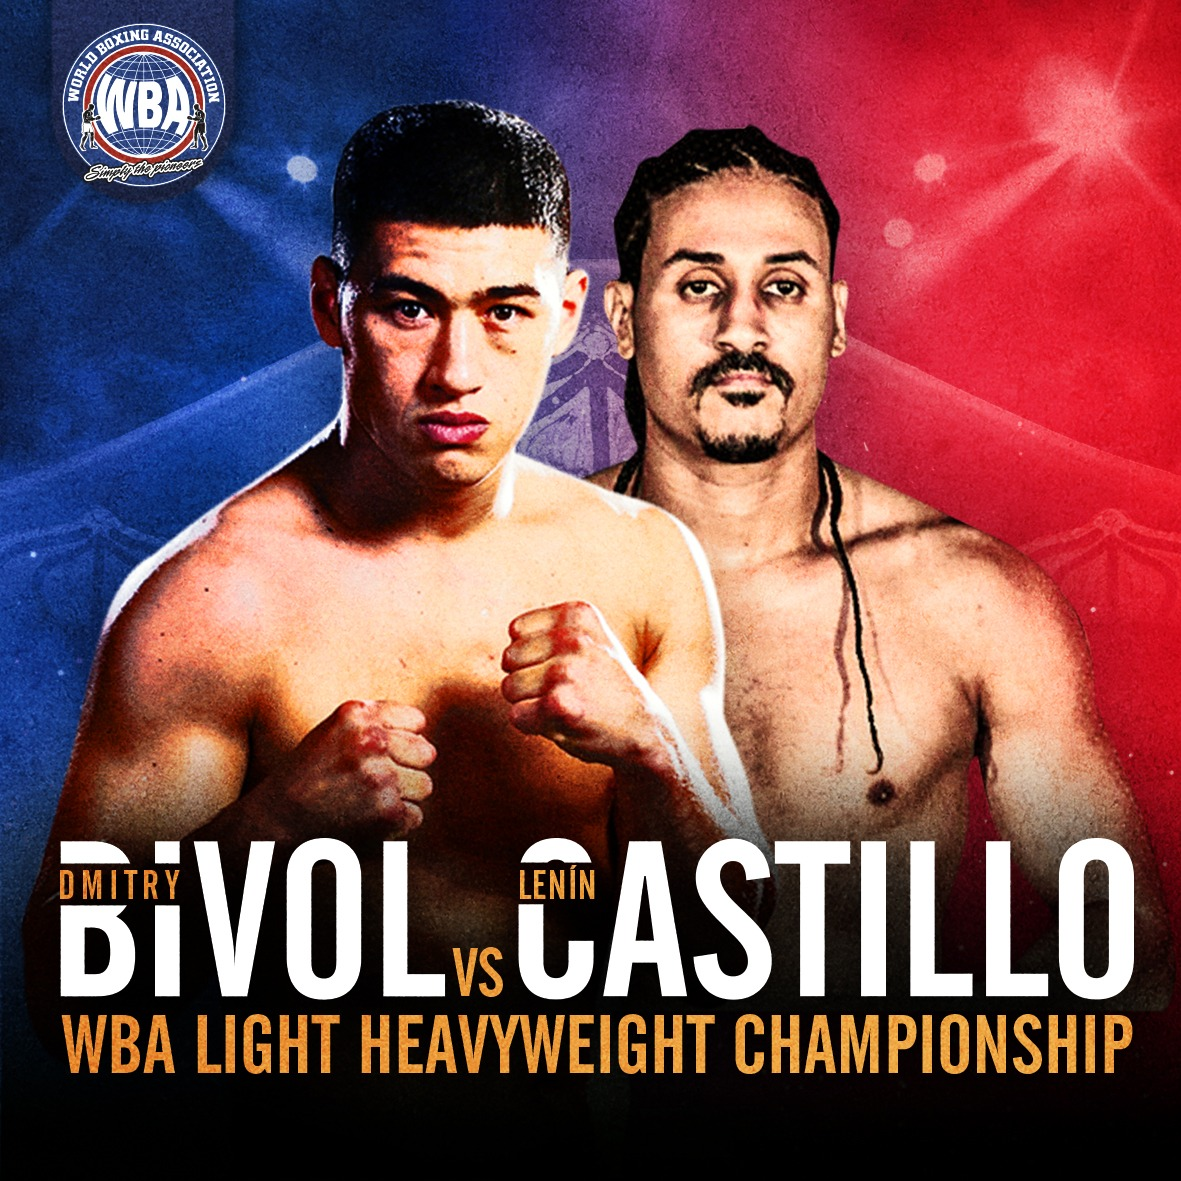 Bivol will defend his WBA World Title against Castillo this Saturday